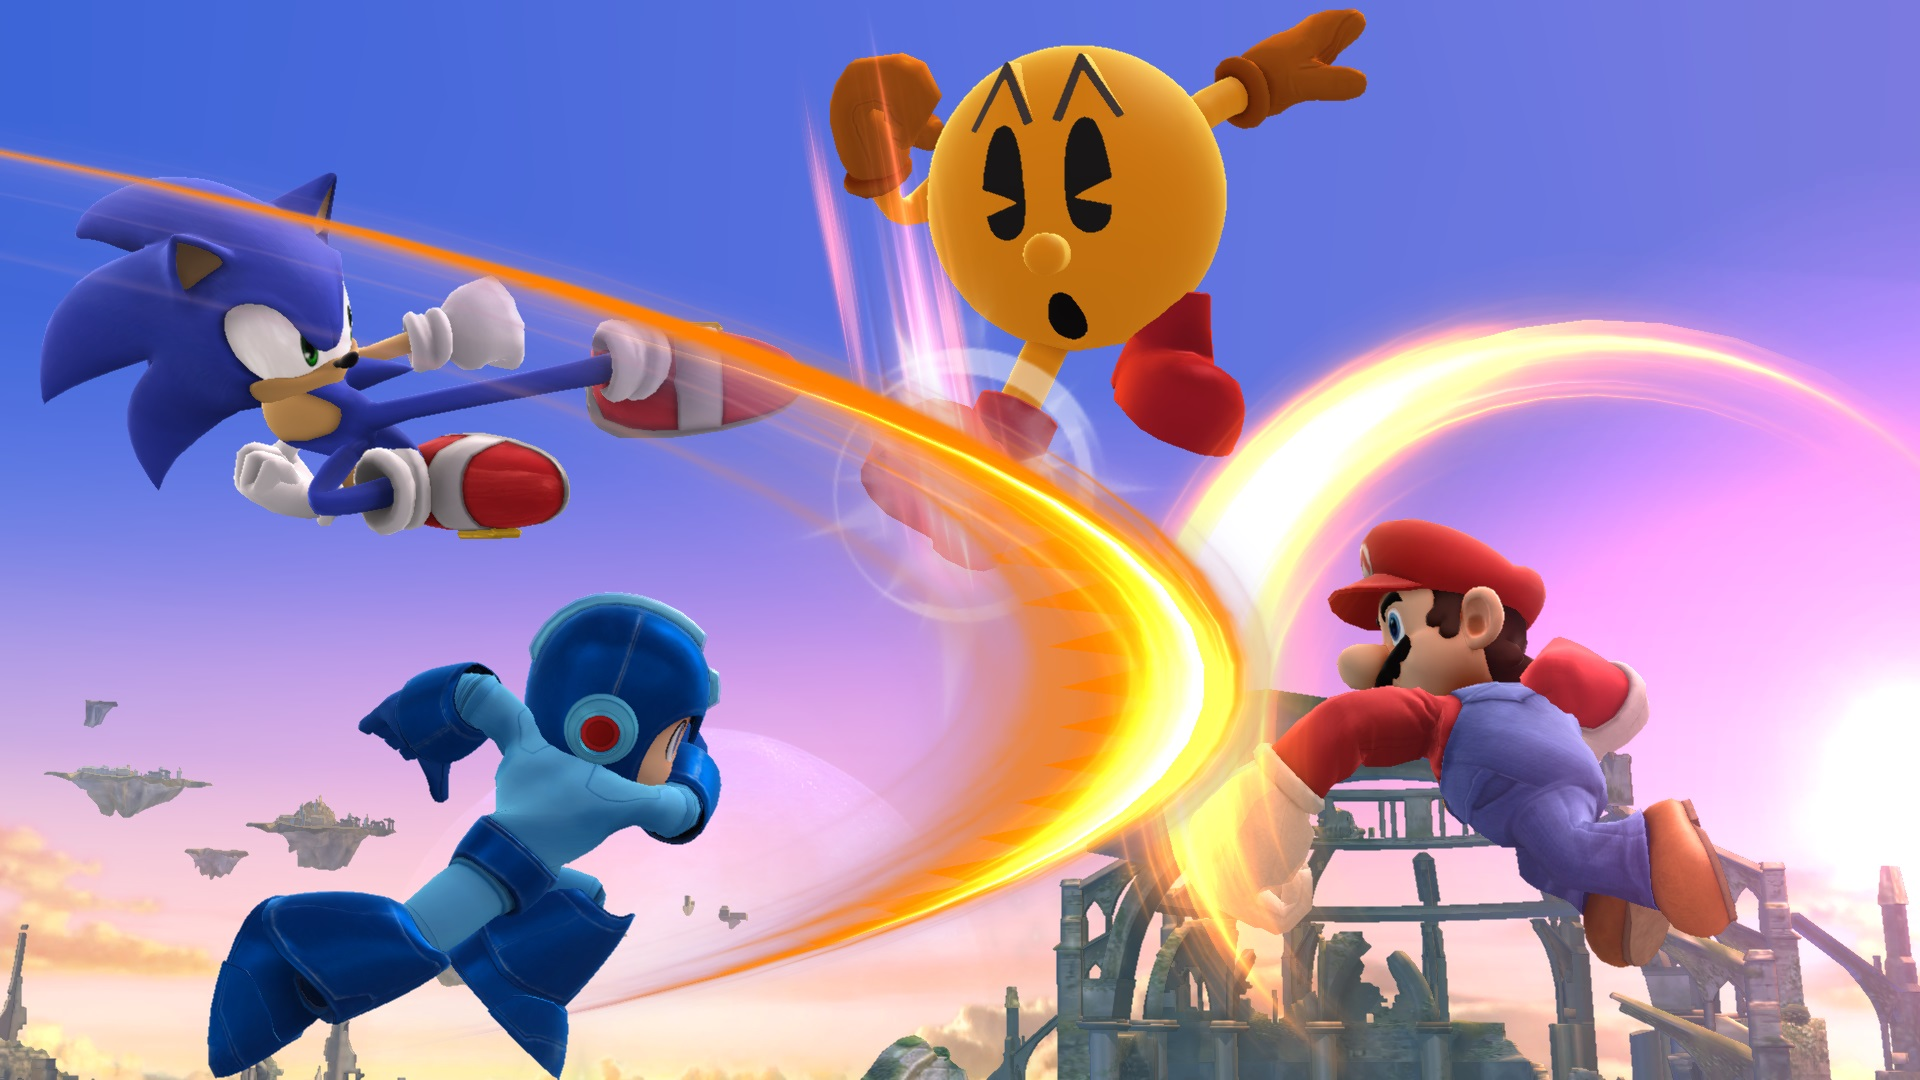 wiiu_supersmashbros_pacman_screen05_1885820529.jpg